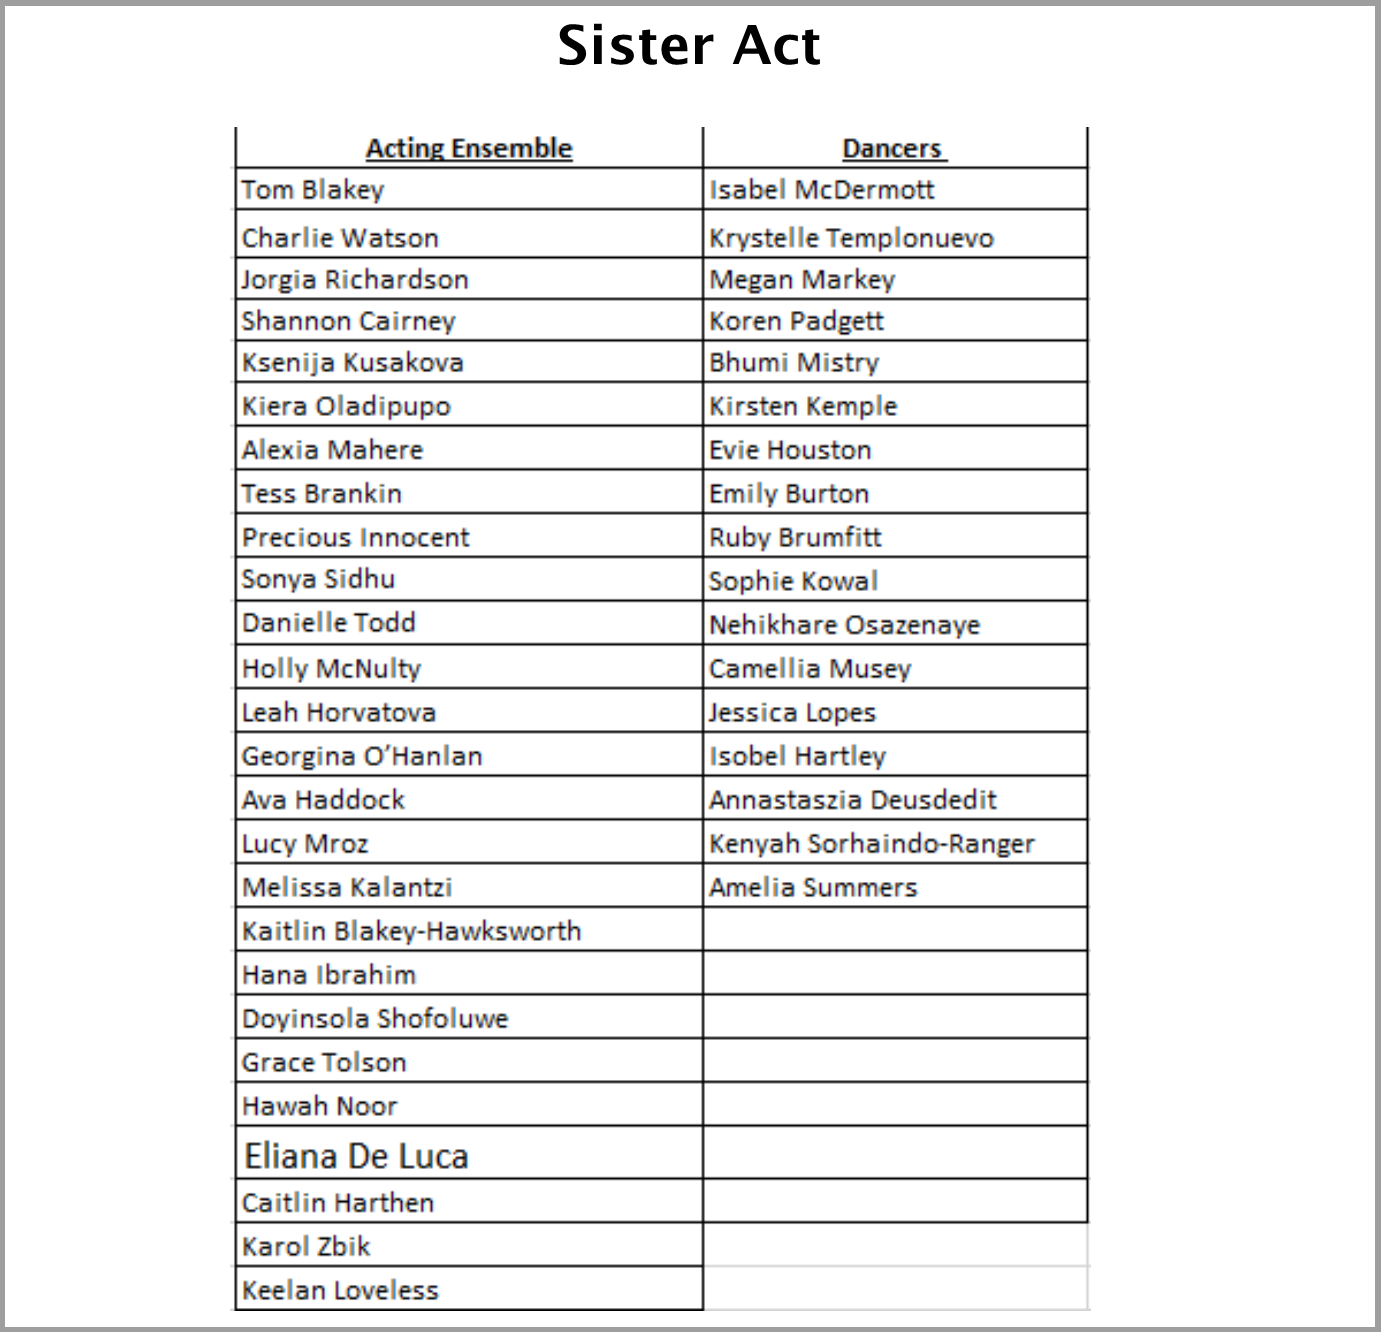 sister act cast 1a.png